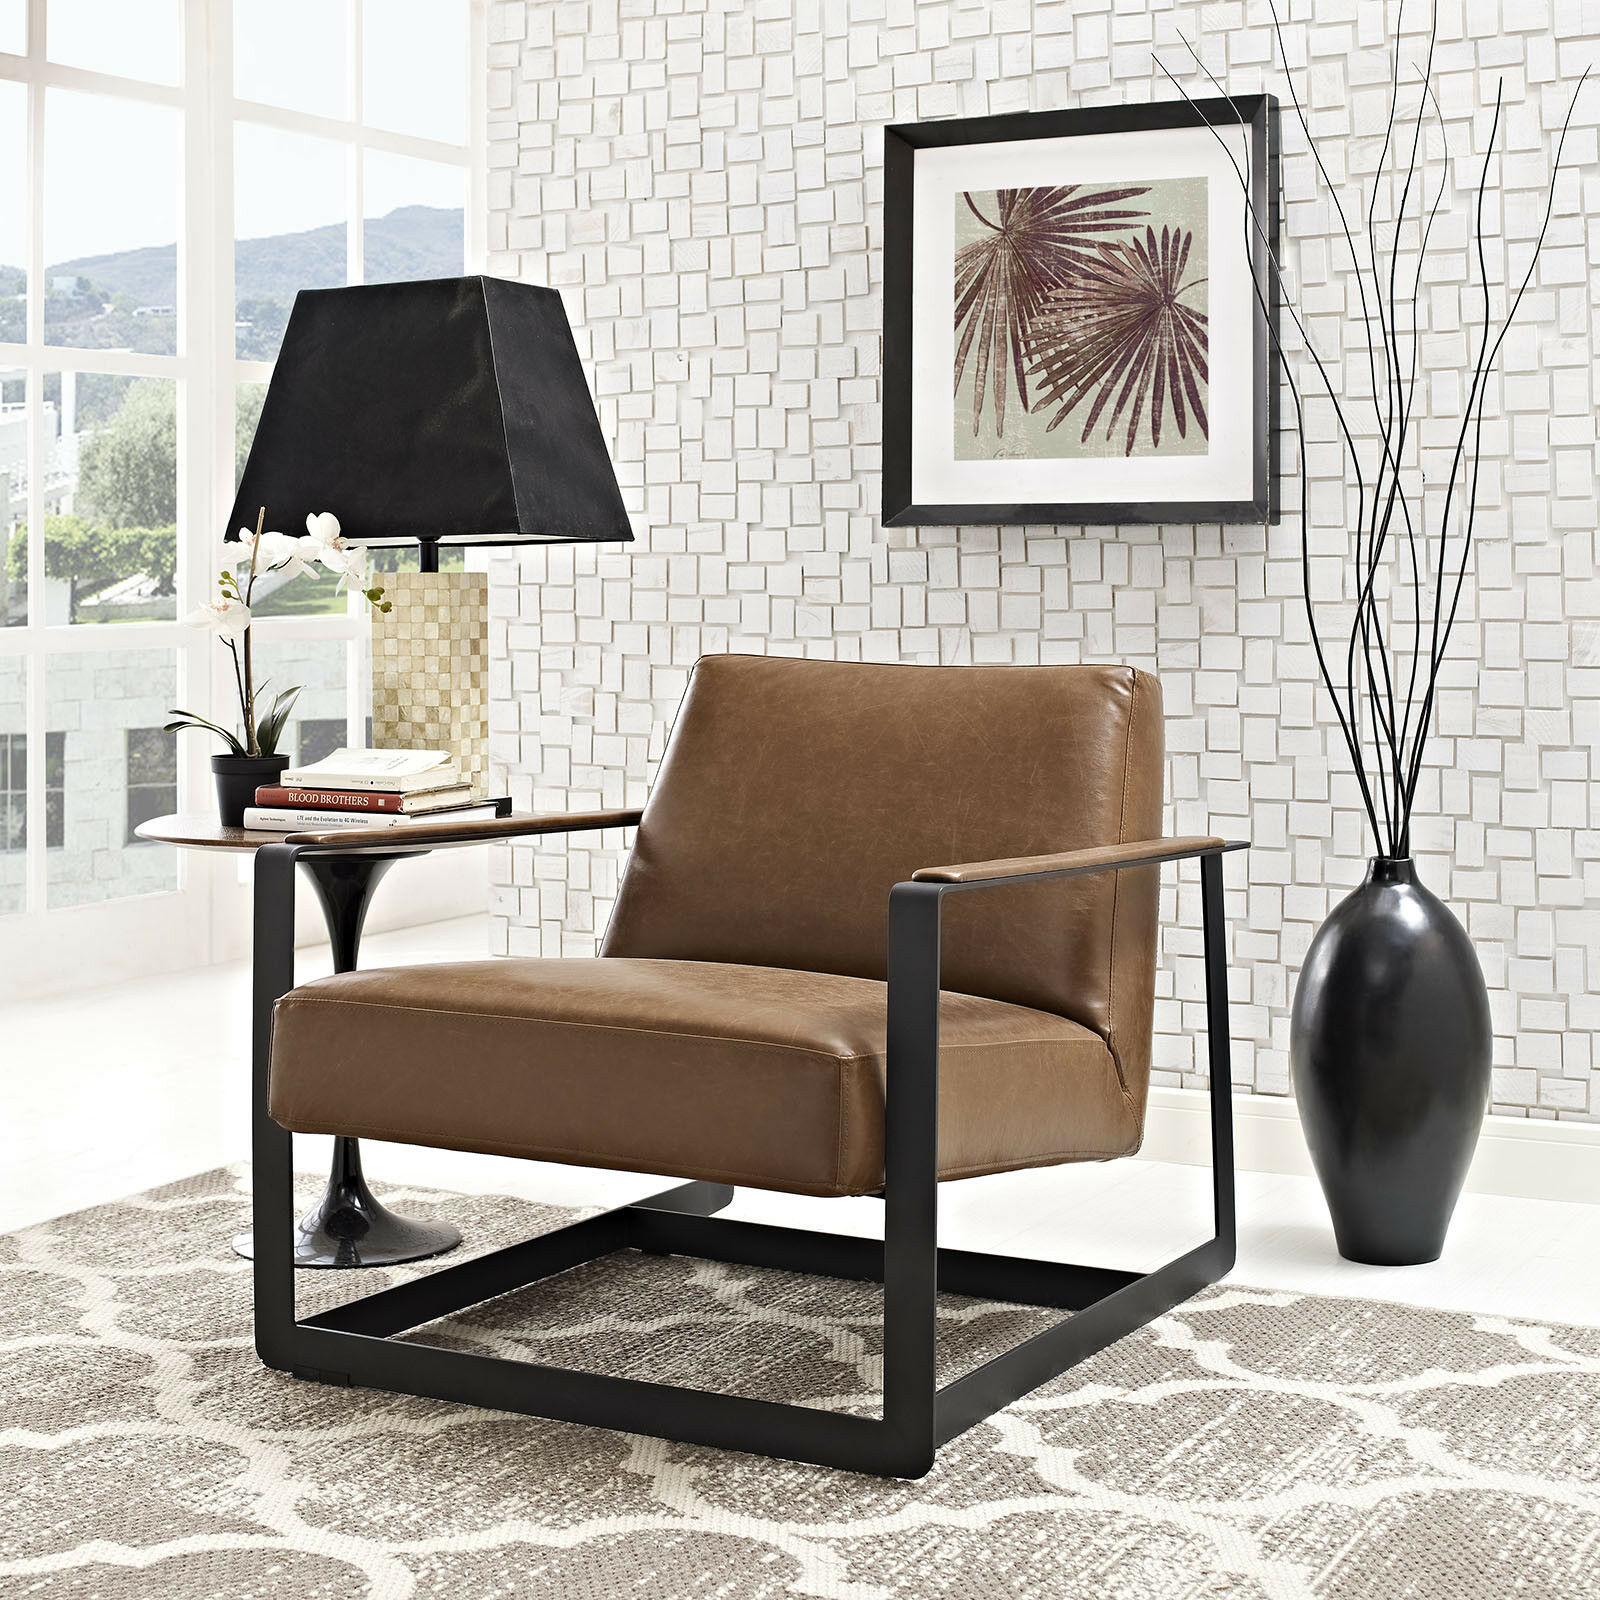 Magnificent Details About Modway Seg Faux Leather Guest Reception Modern Accent Lounge Arm Chair In Brown Machost Co Dining Chair Design Ideas Machostcouk